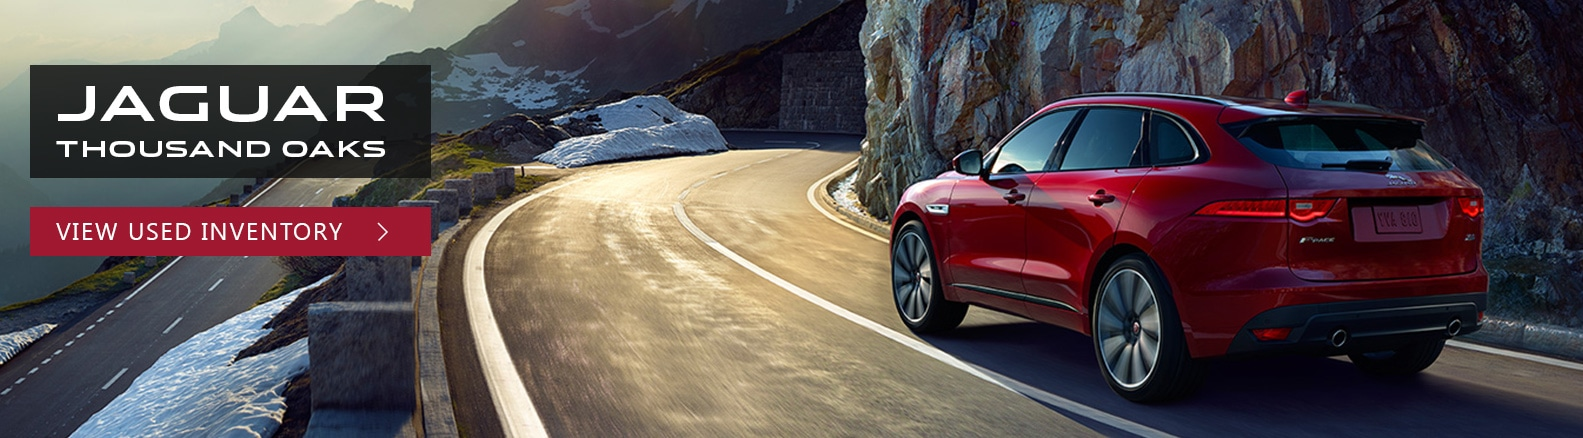 laurel for sales we jaguar and best mount come hill near see offer at you nearby dealer what dealership cherry looking service me here nj have in to woodbury htm the